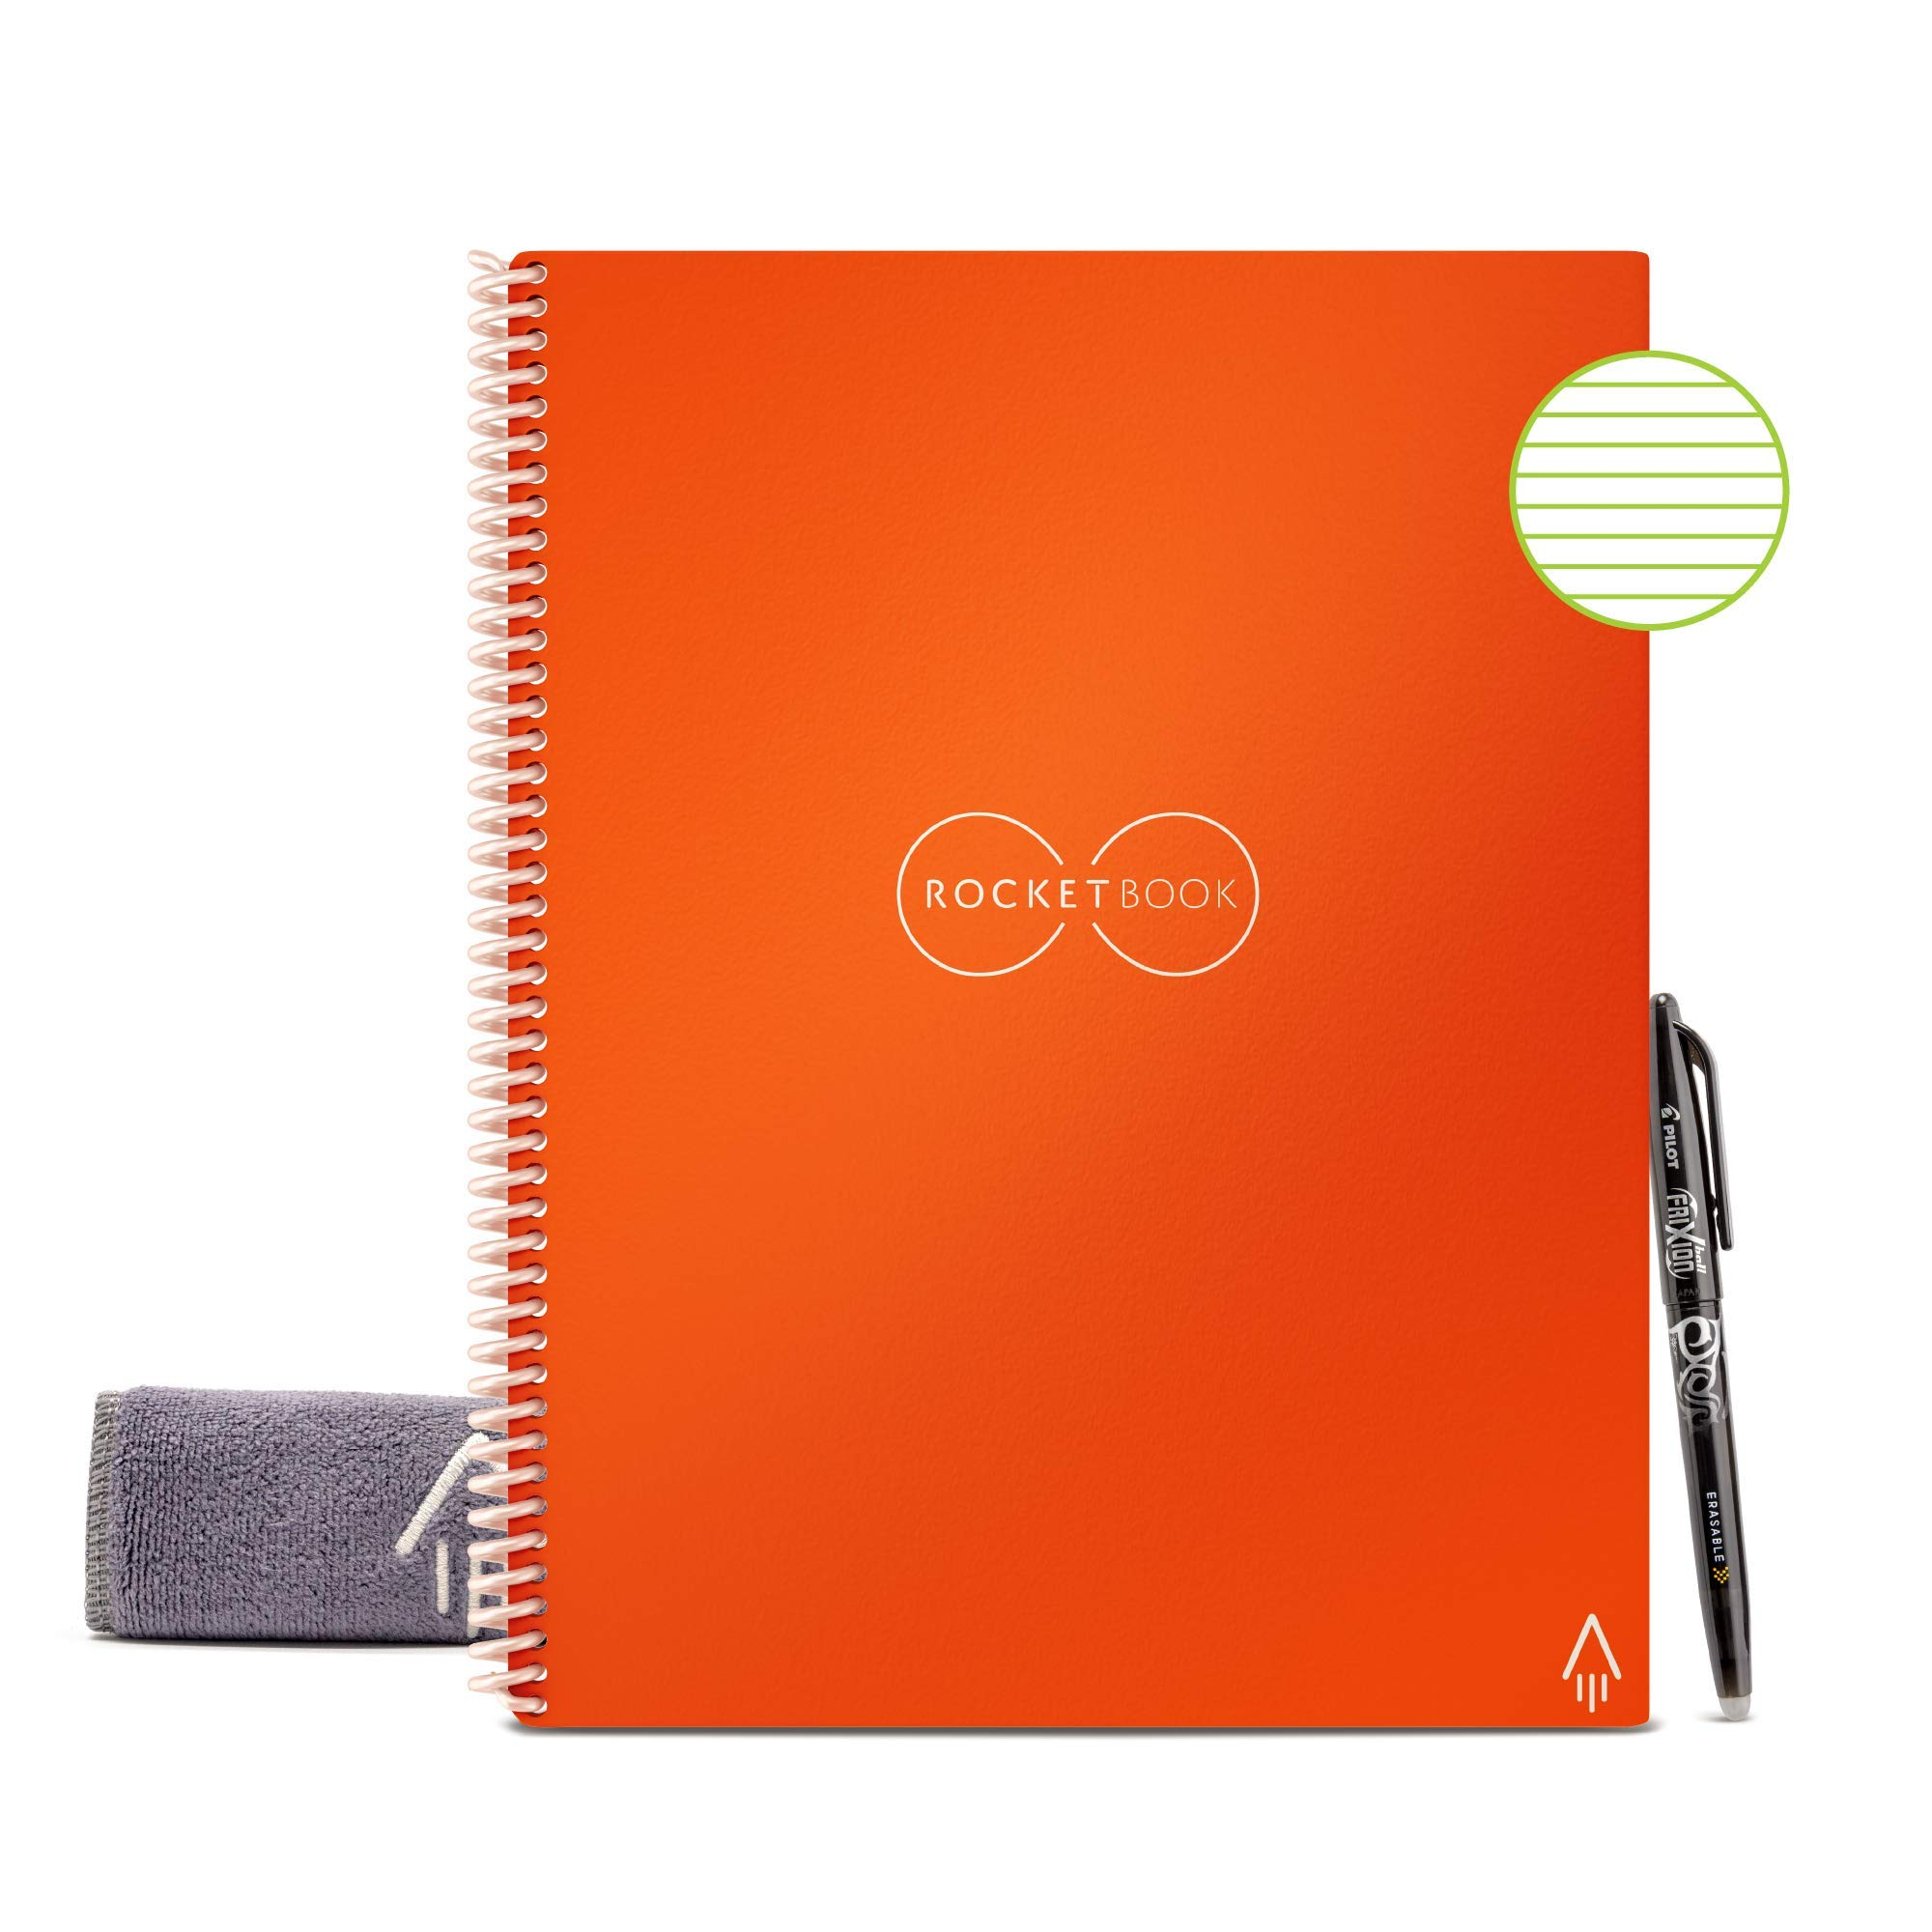 """Rocketbook Smart Reusable Notebook - Lined Eco-Friendly Notebook with 1 Pilot Frixion Pen & 1 Microfiber Cloth Included - Beacon Orange Cover, Letter Size (8.5"""" x 11"""")"""